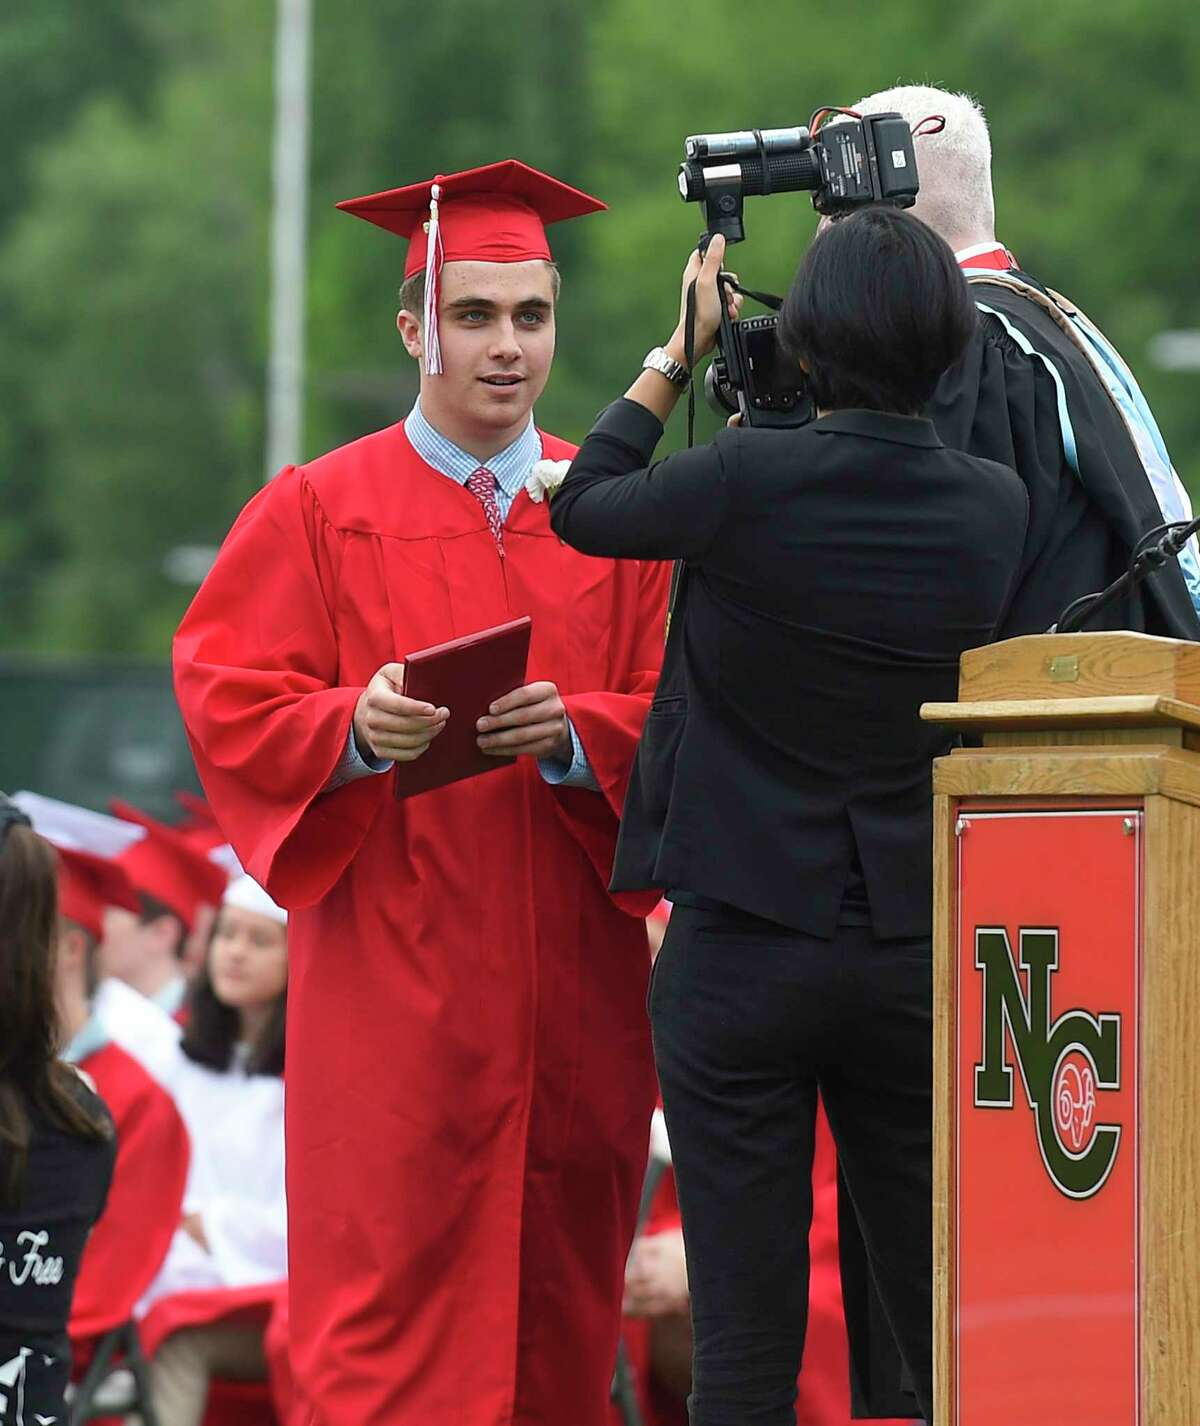 New Canaan High School Class of 2019 commencement exercises on June 19, 2019 in New Canaan, Connecticut.